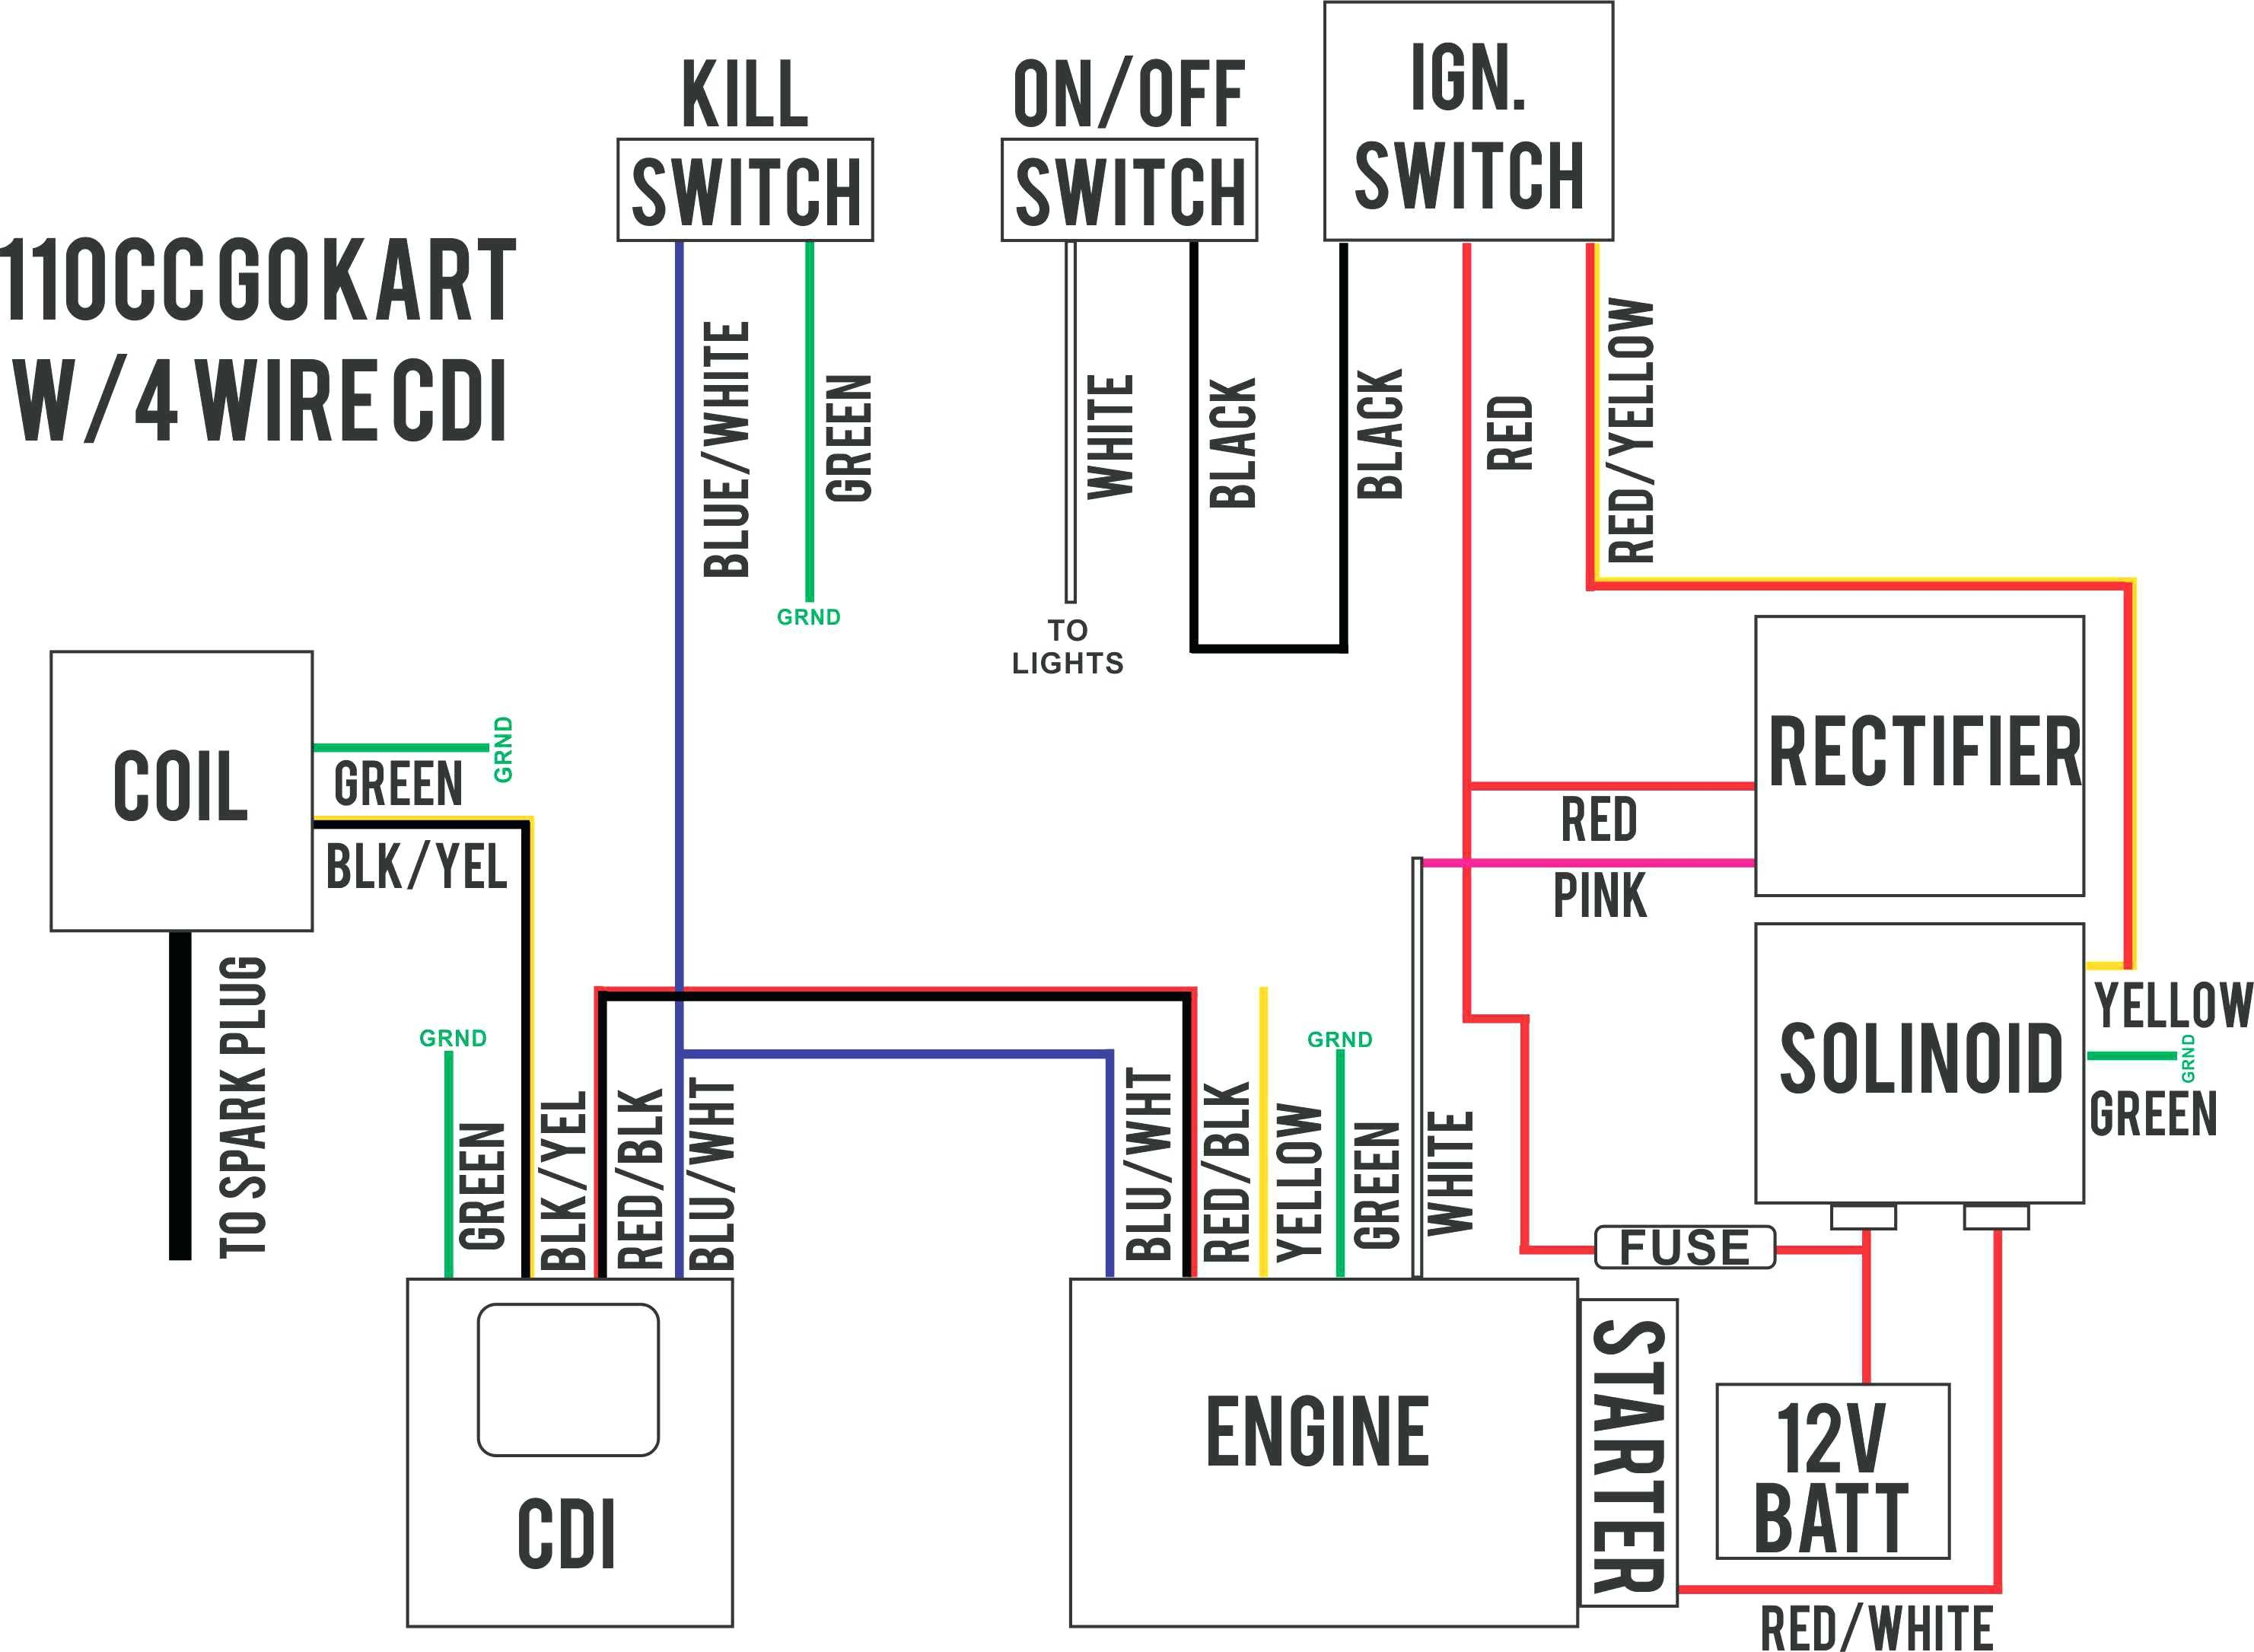 kenwood kdc 108 wiring diagram wiring diagram image wiring diagram for kenwood kdc 108